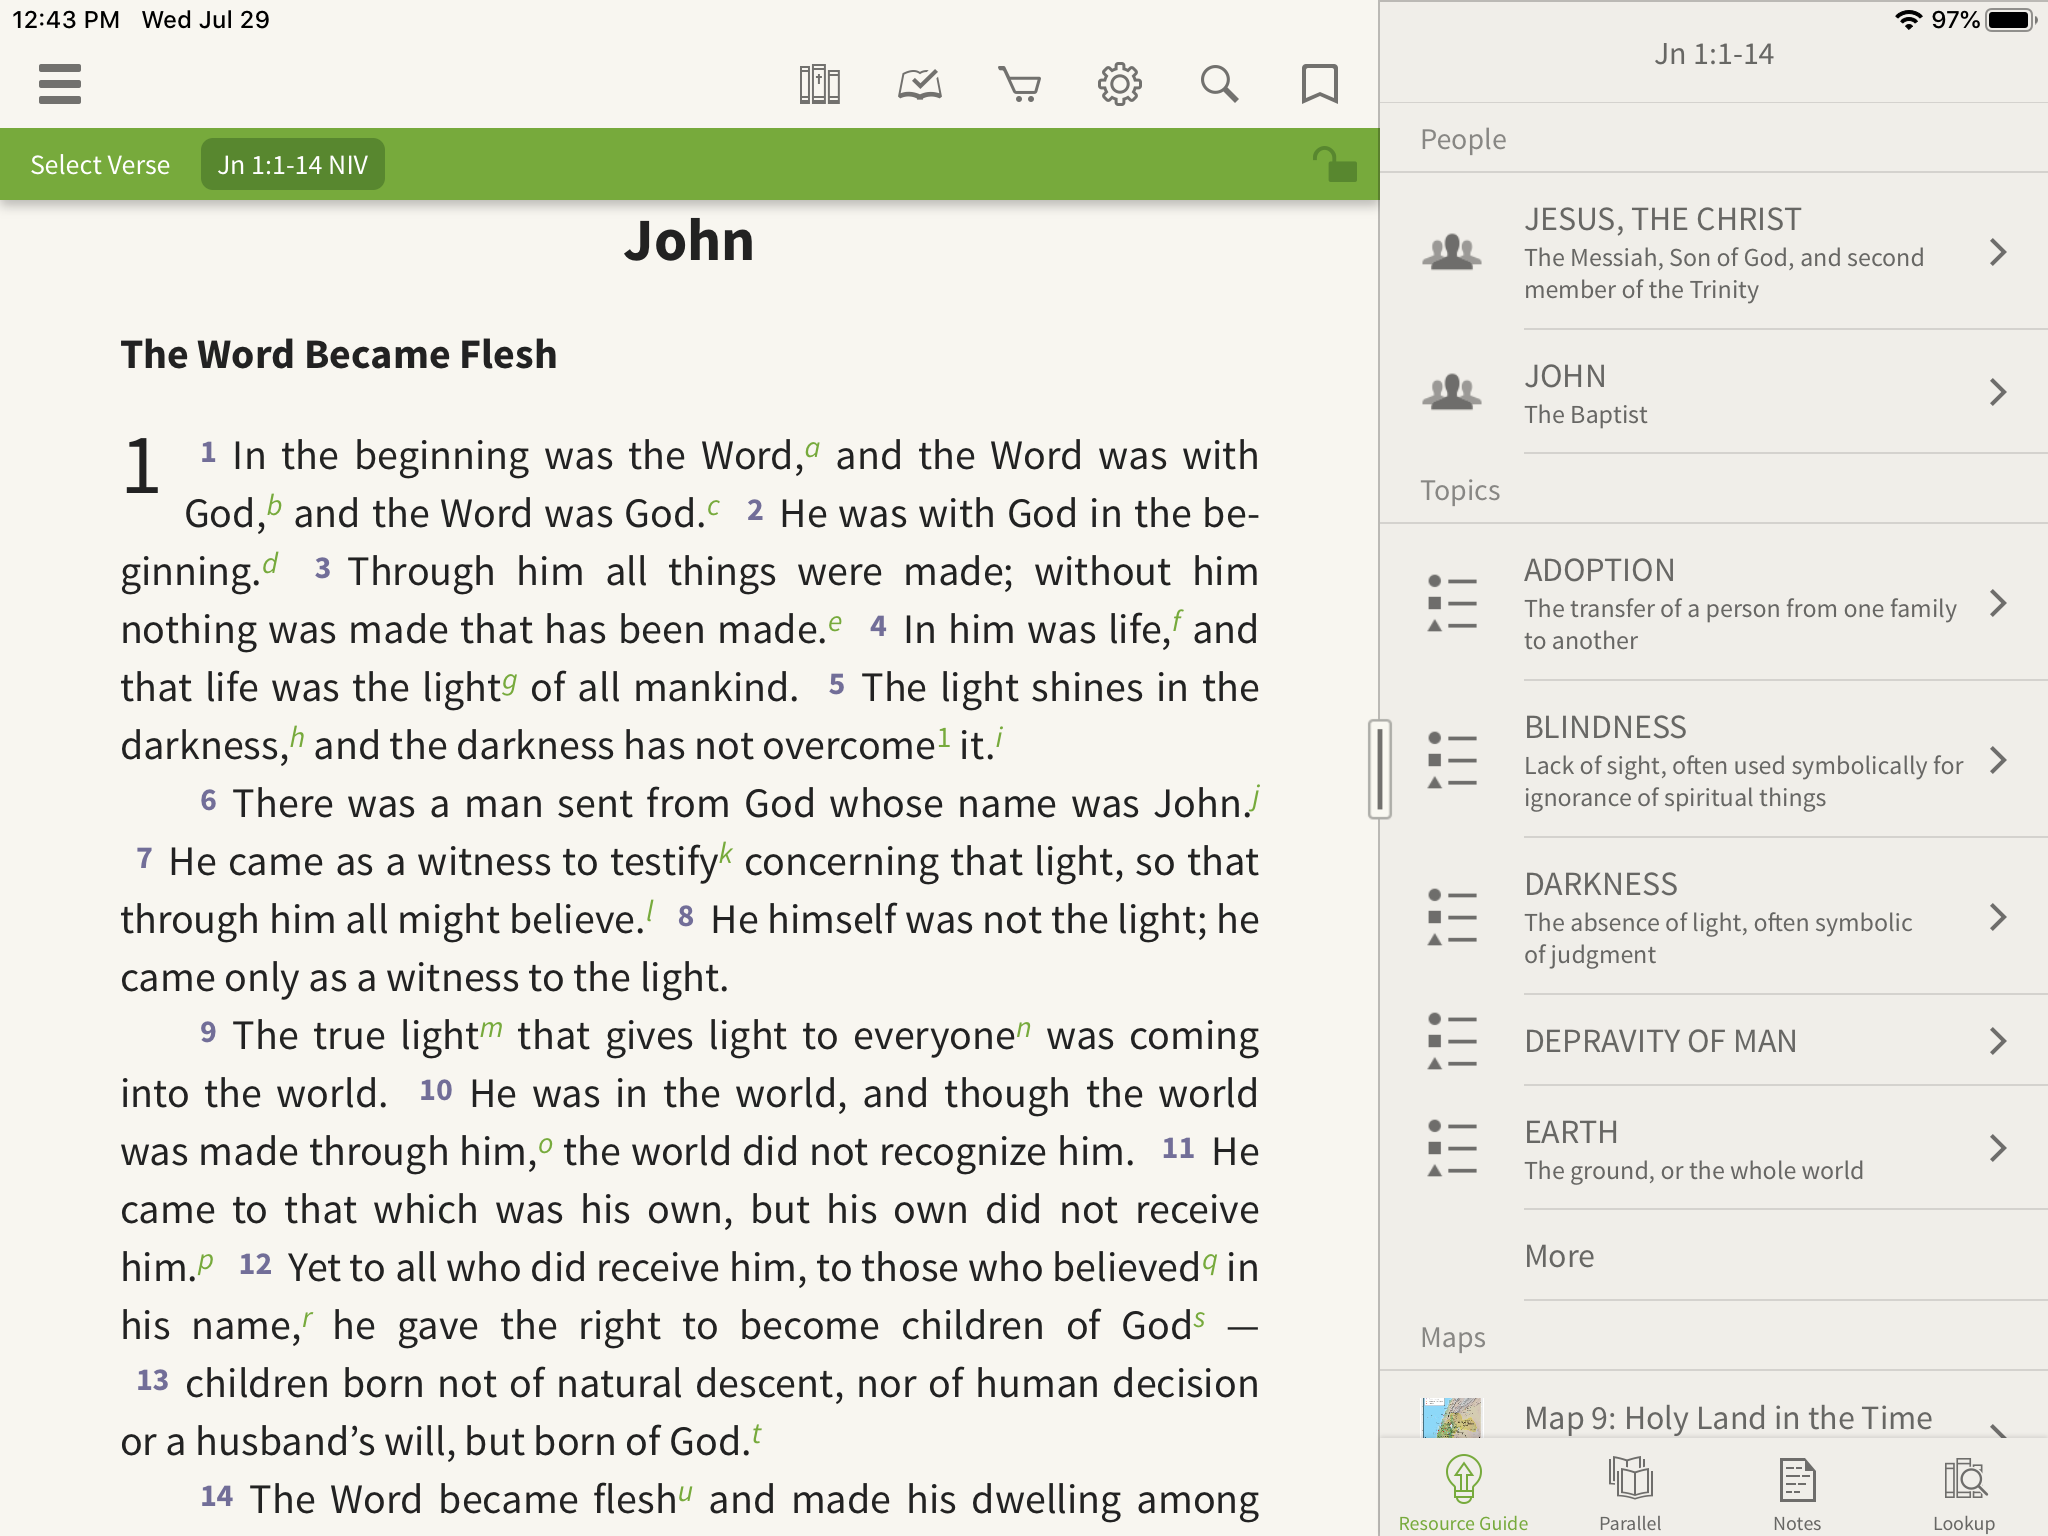 opening people, topics, and places in the olive tree bible app